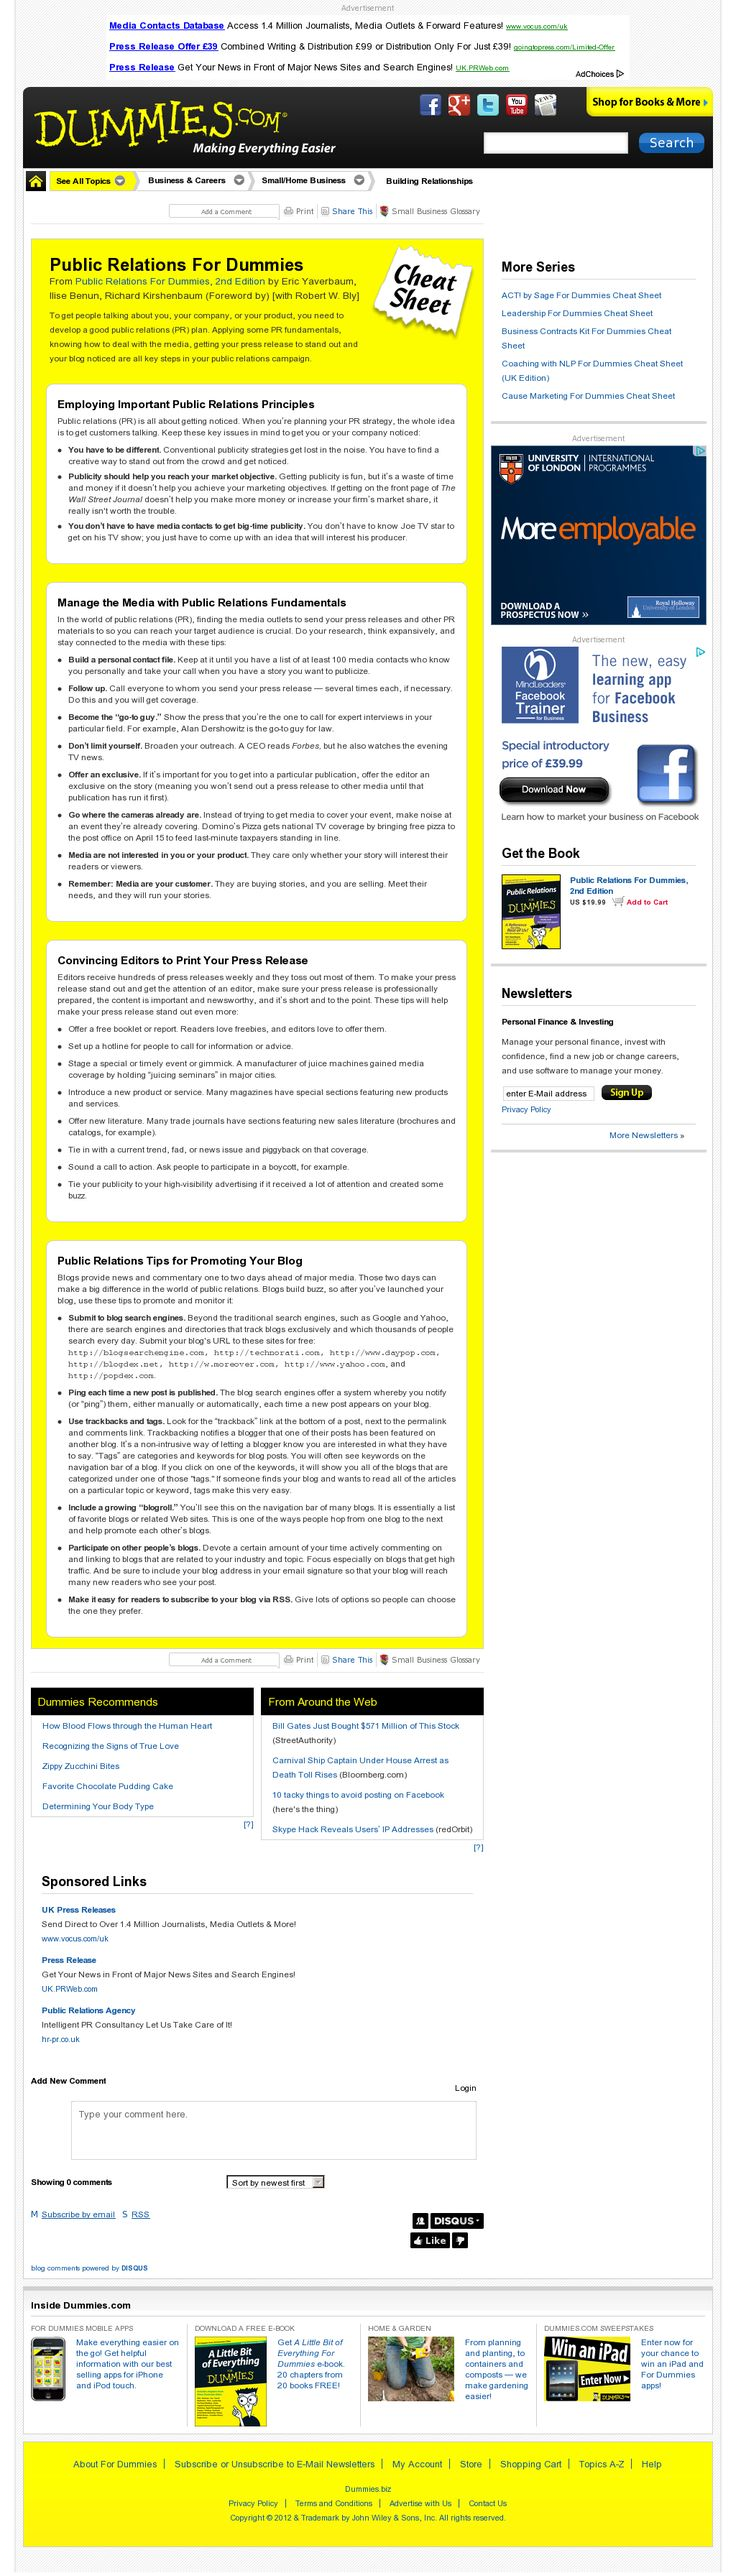 To get people talking about you, your company, or your product, you need to develop a good public relations (PR) plan.  (Read the article)    Website 'http://www.dummies.com/how-to/content/public-relations-for-dummies-cheat-sheet.html' snapped on Snapito!